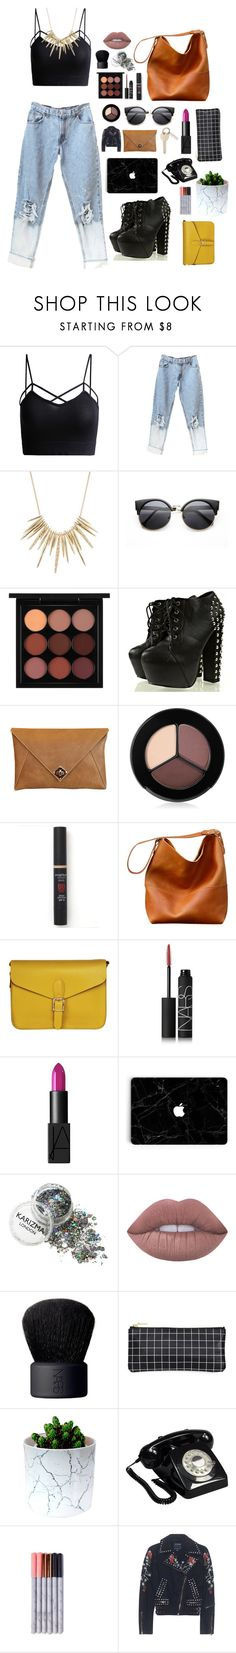 """""""Untitled #16"""" by mcdonnell-kaetlyn ❤ liked on Polyvore featuring Alexis Bittar, MAC Cosmetics, The Code, Smashbox, Angela & Roi, NARS Cosmetics, Lime Crime, GPO and True Religion"""